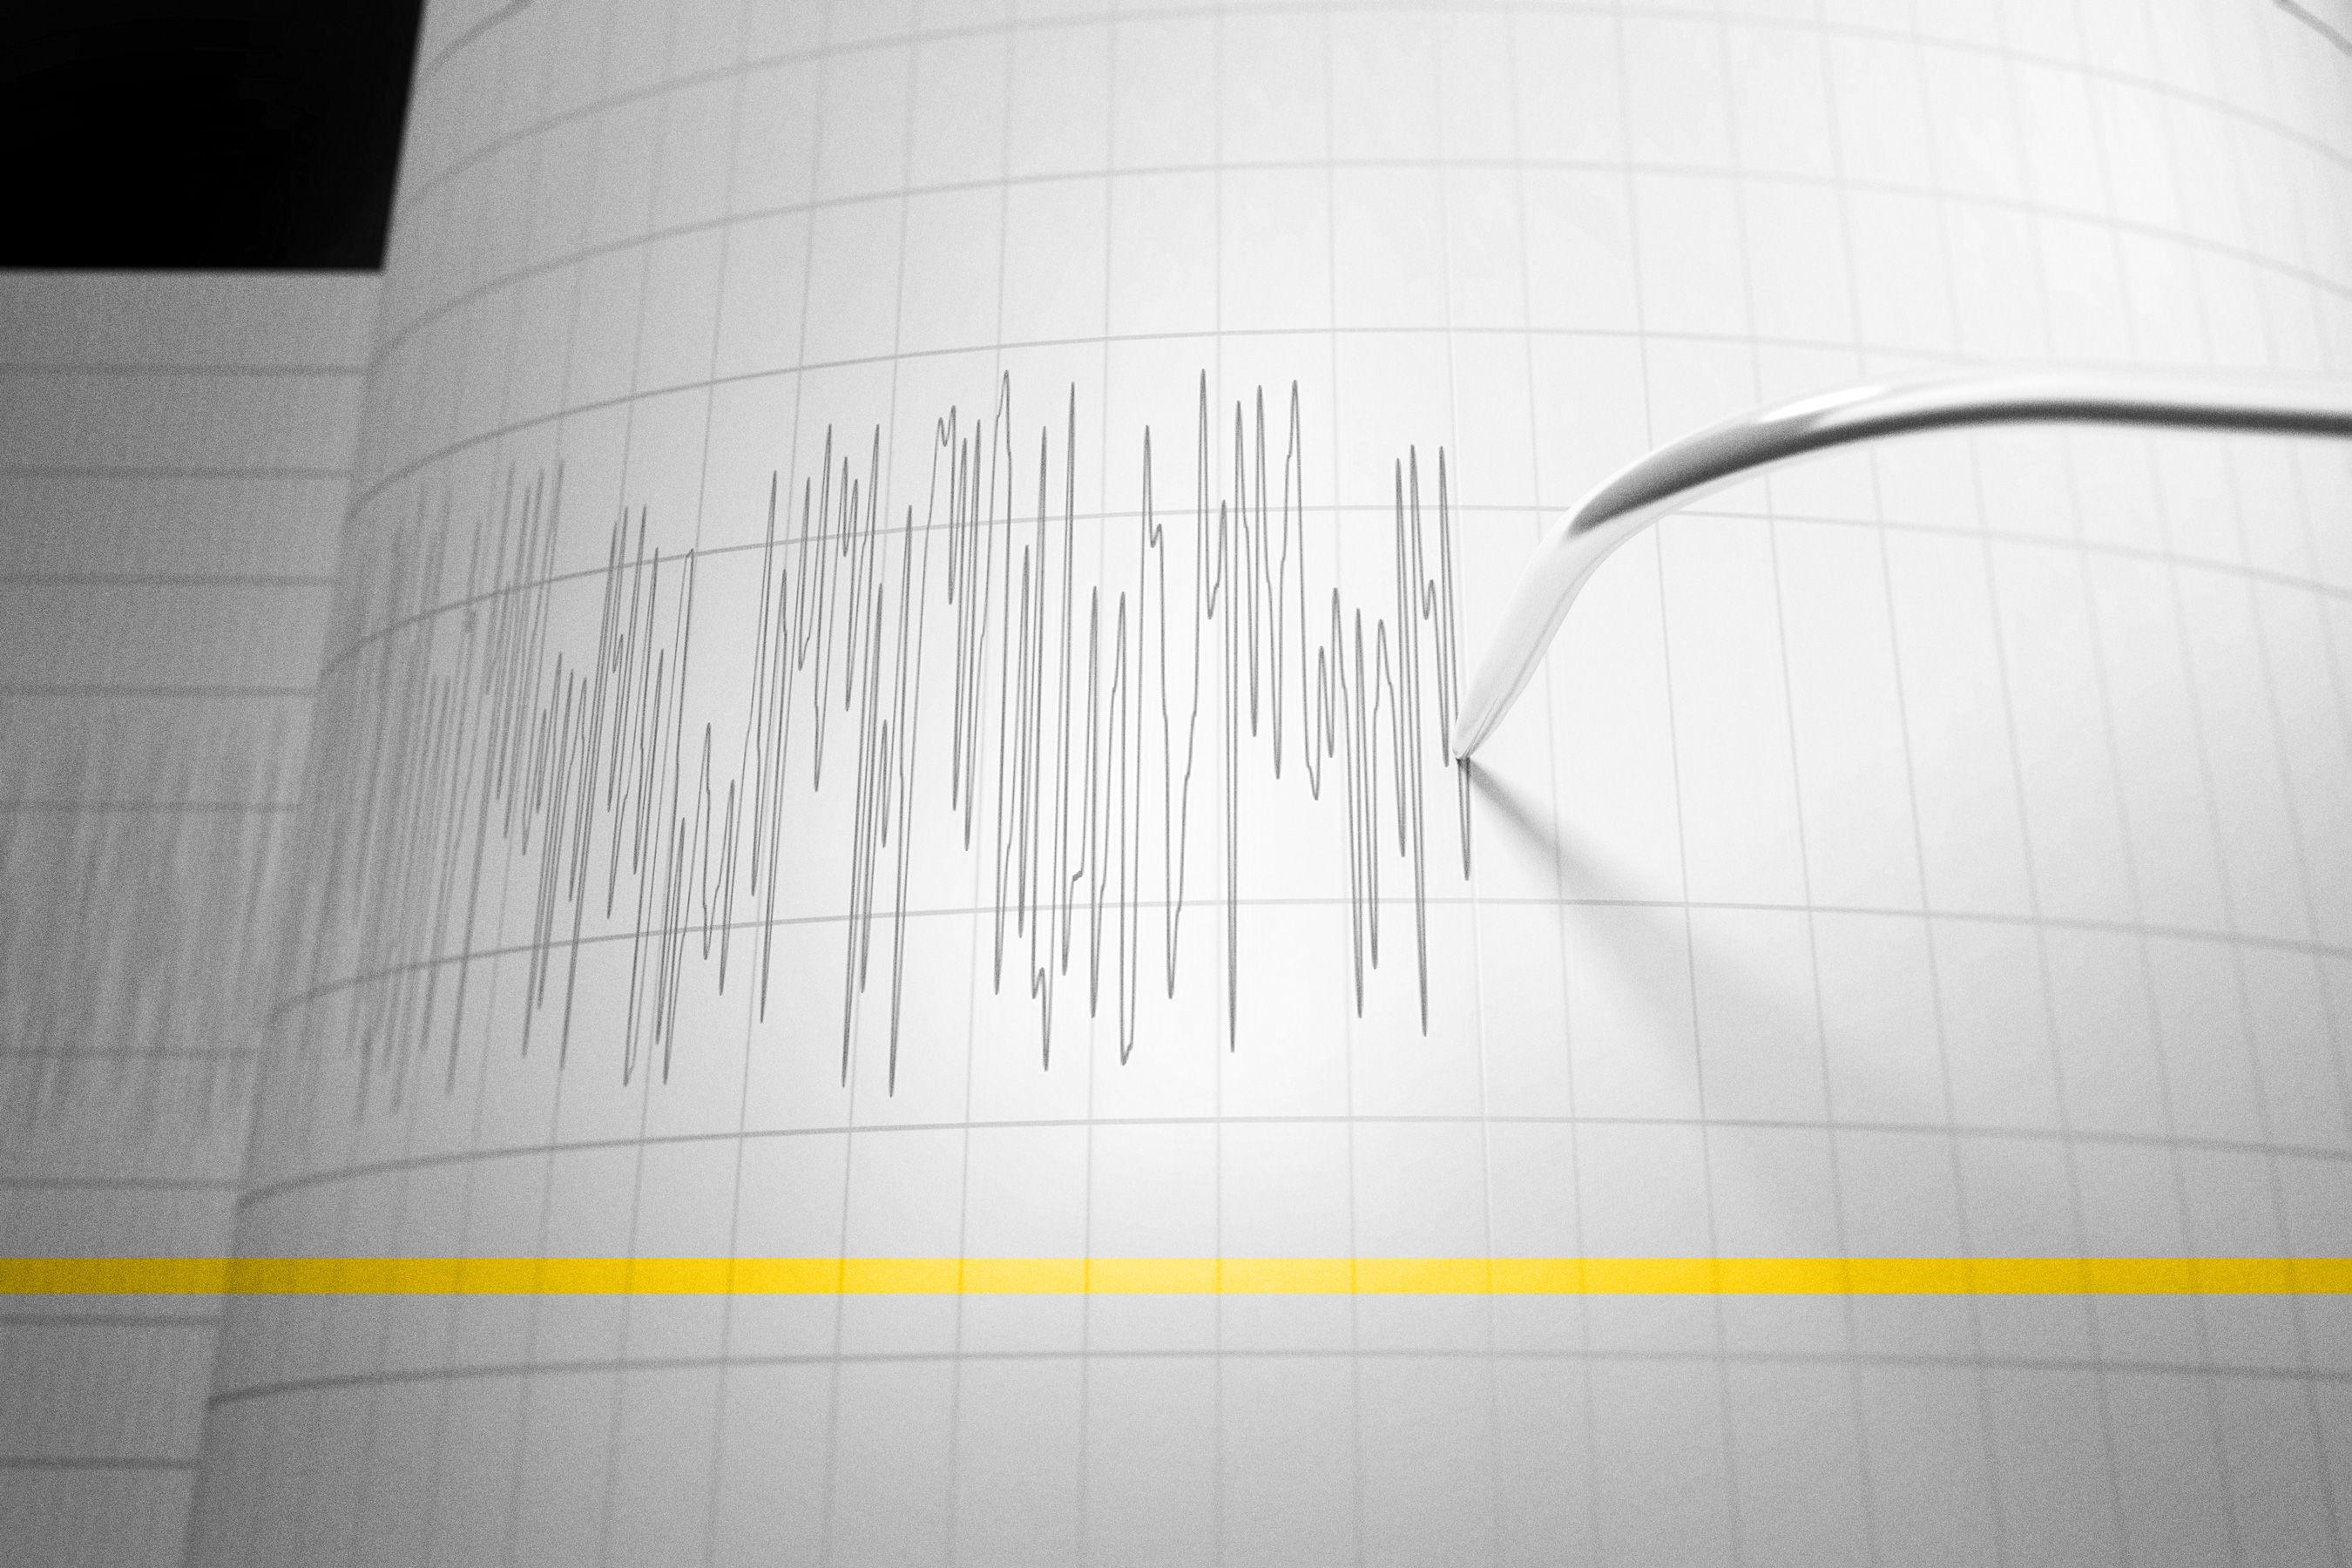 A cluster of earthquakes shook Nevada from Tuesday into Wednesday.